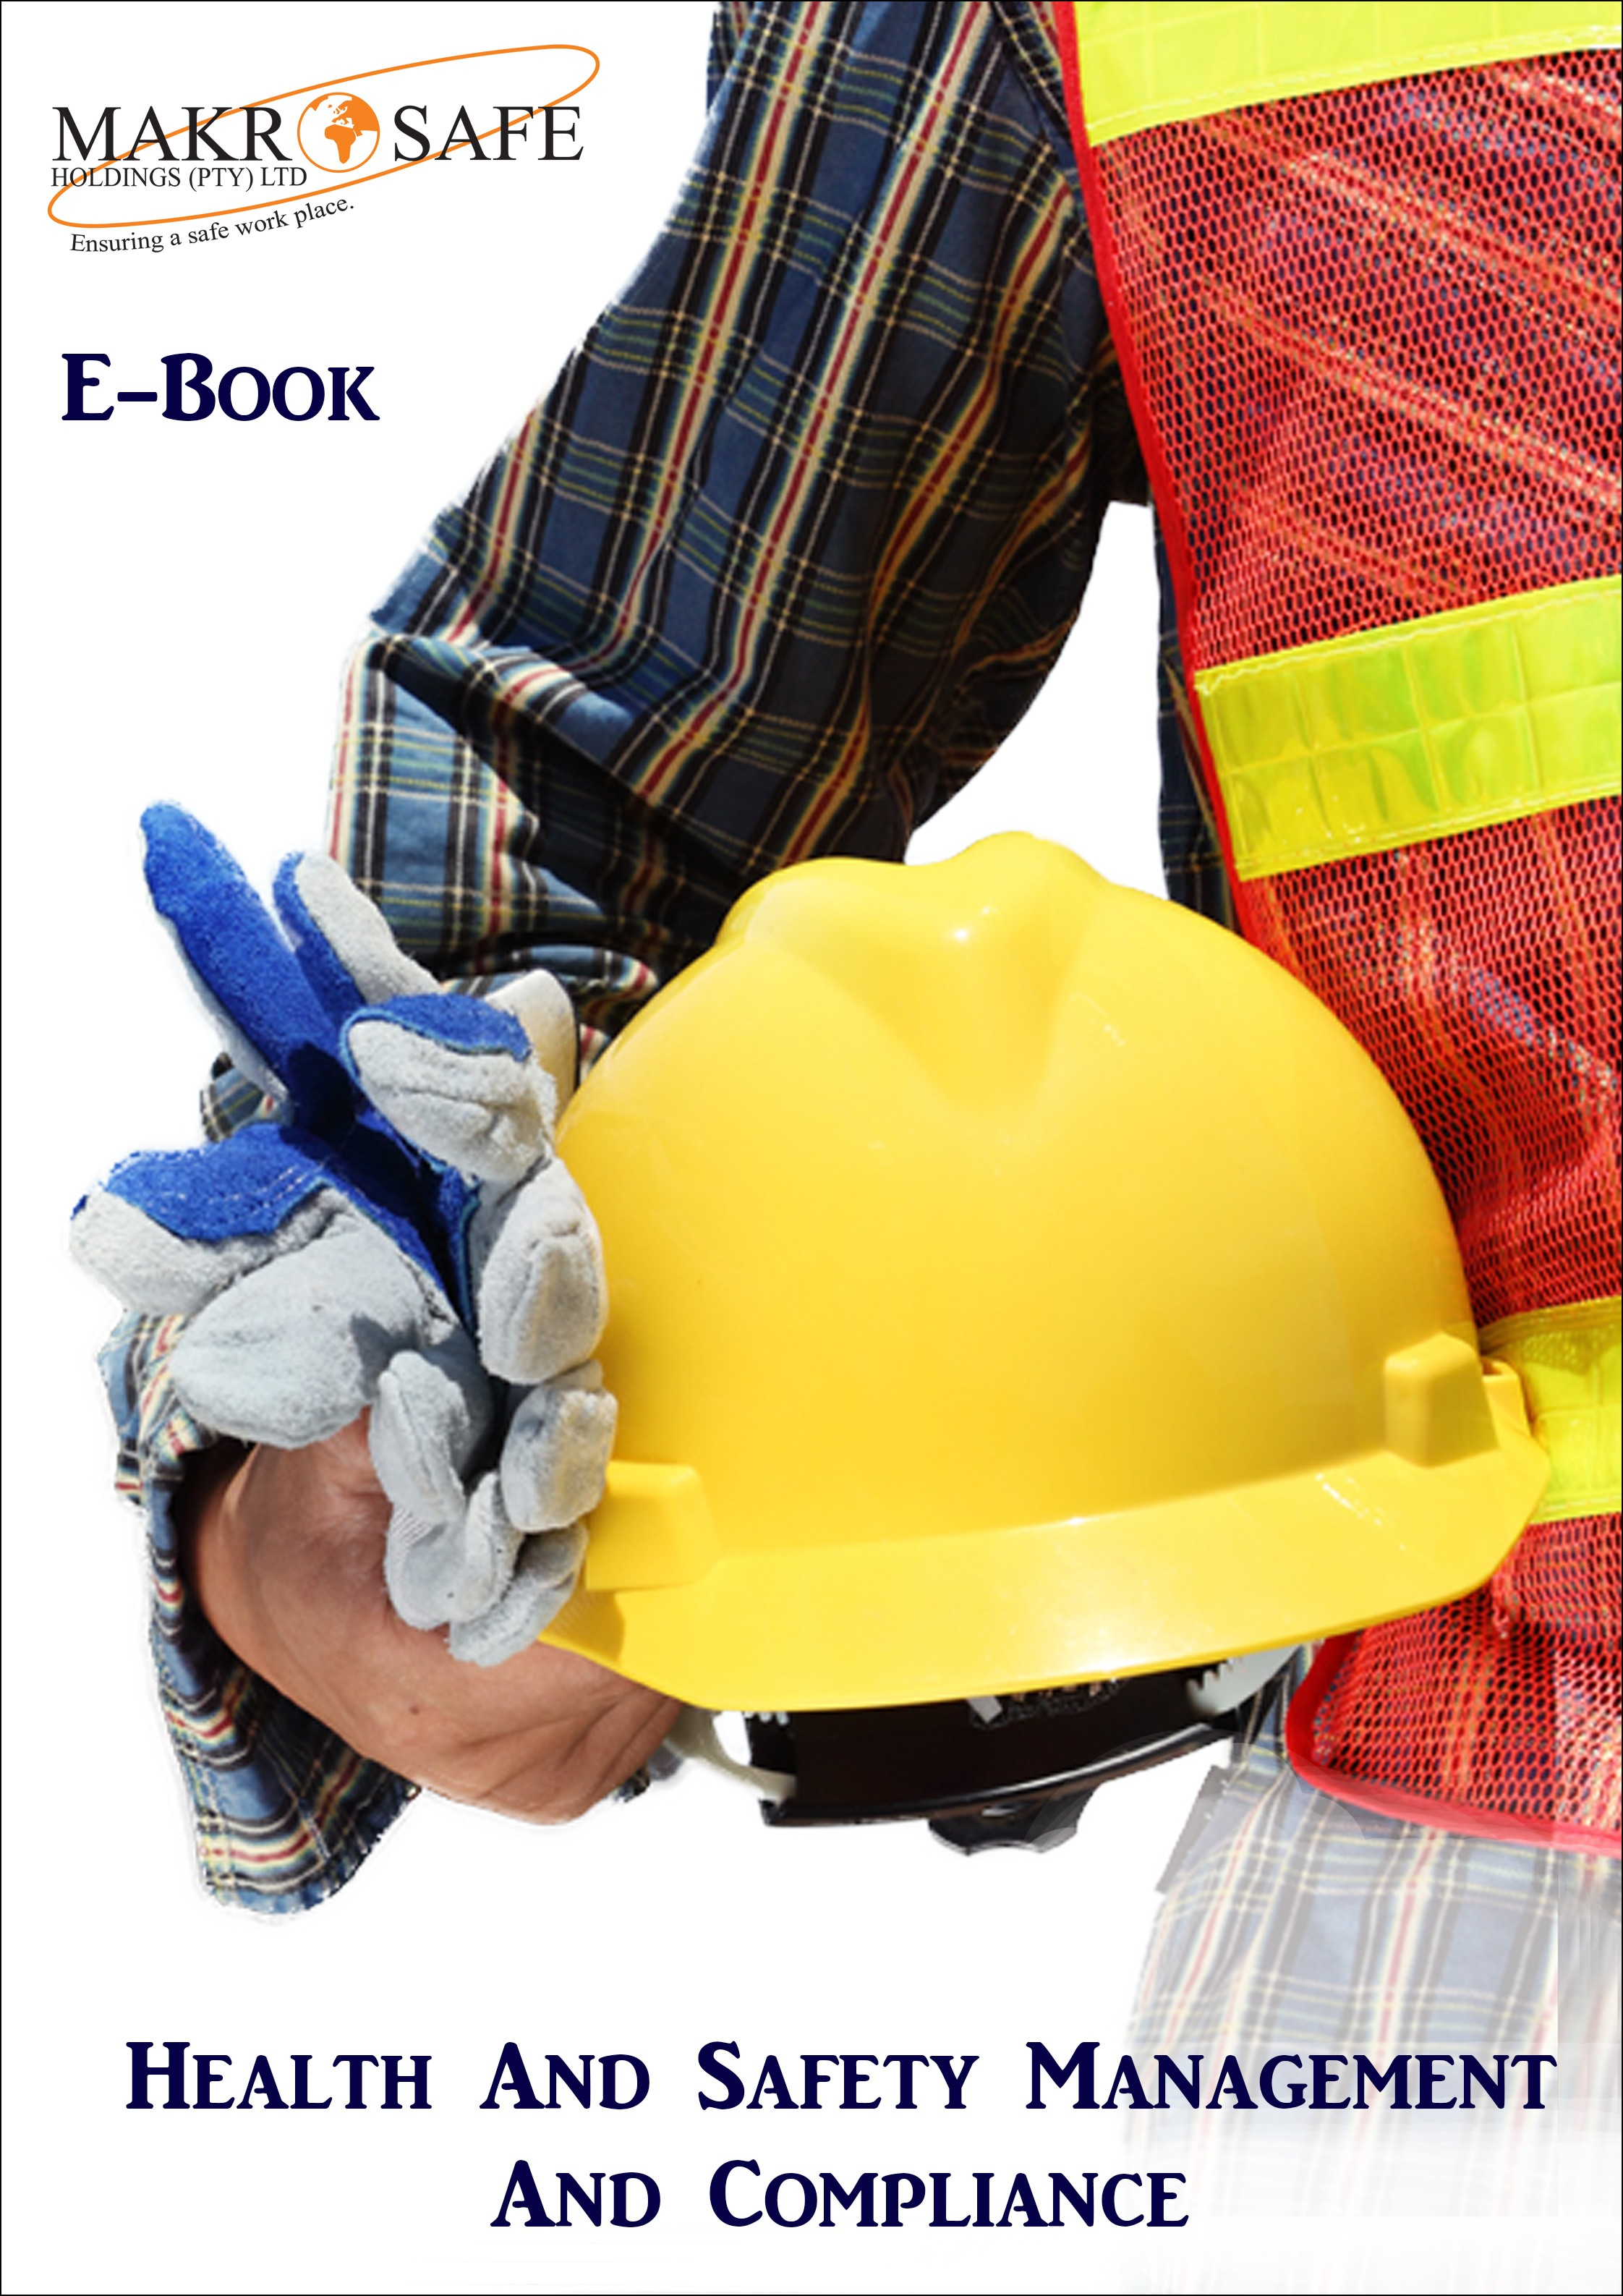 E-Book, Health and Safety